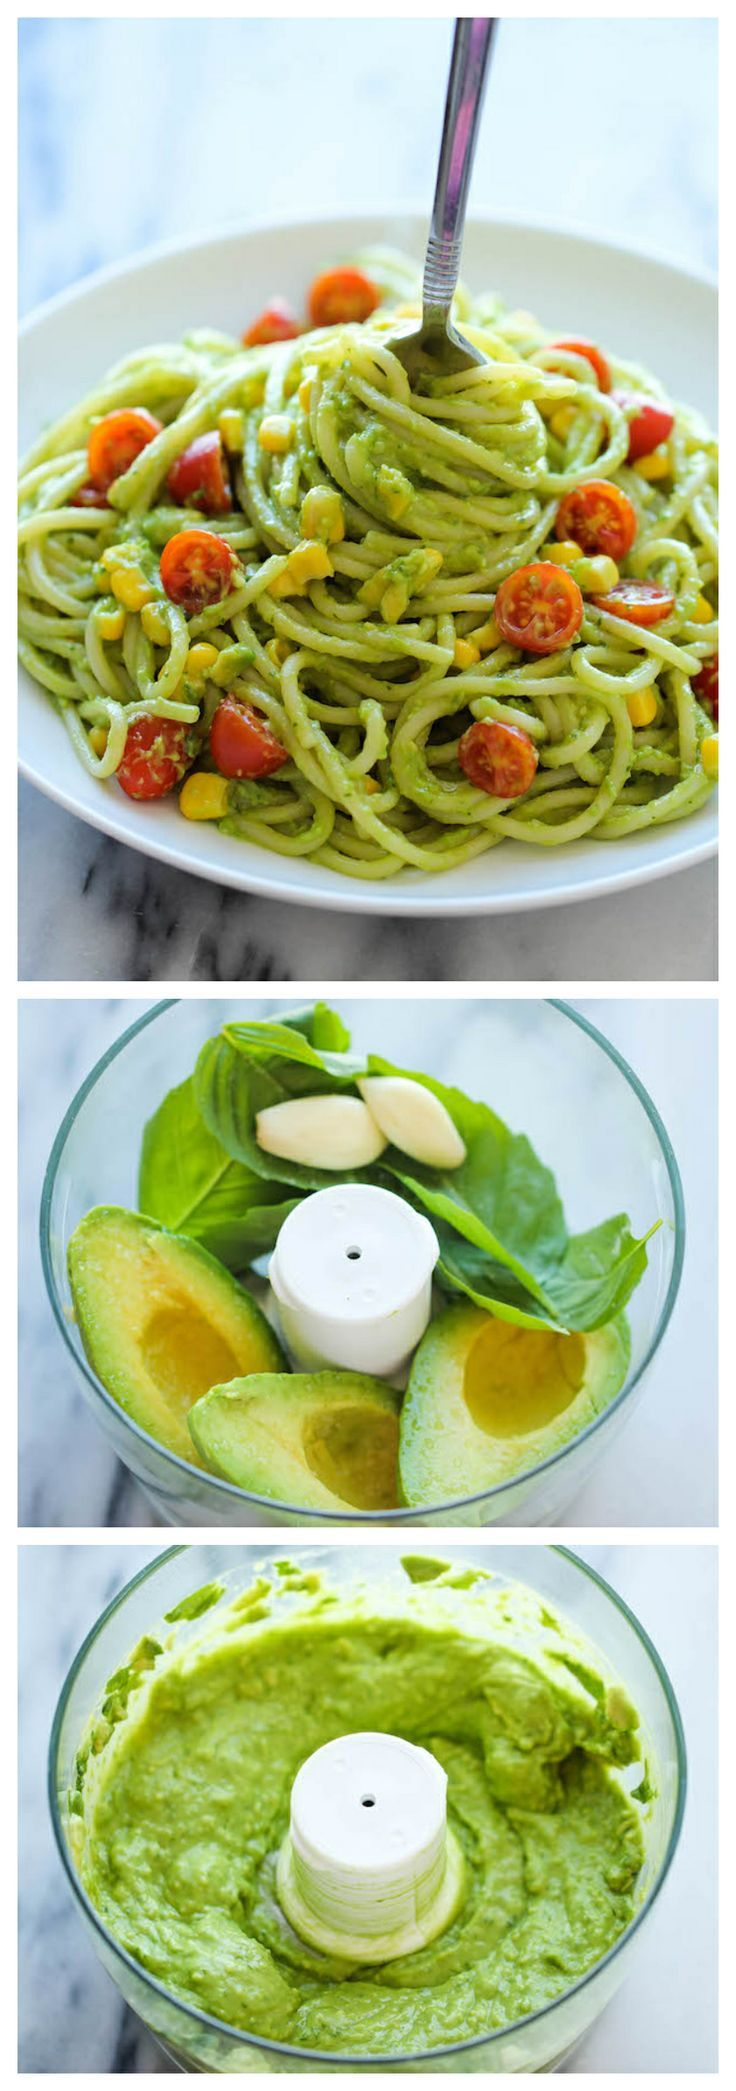 Avocado Pasta - Healthy and easy!